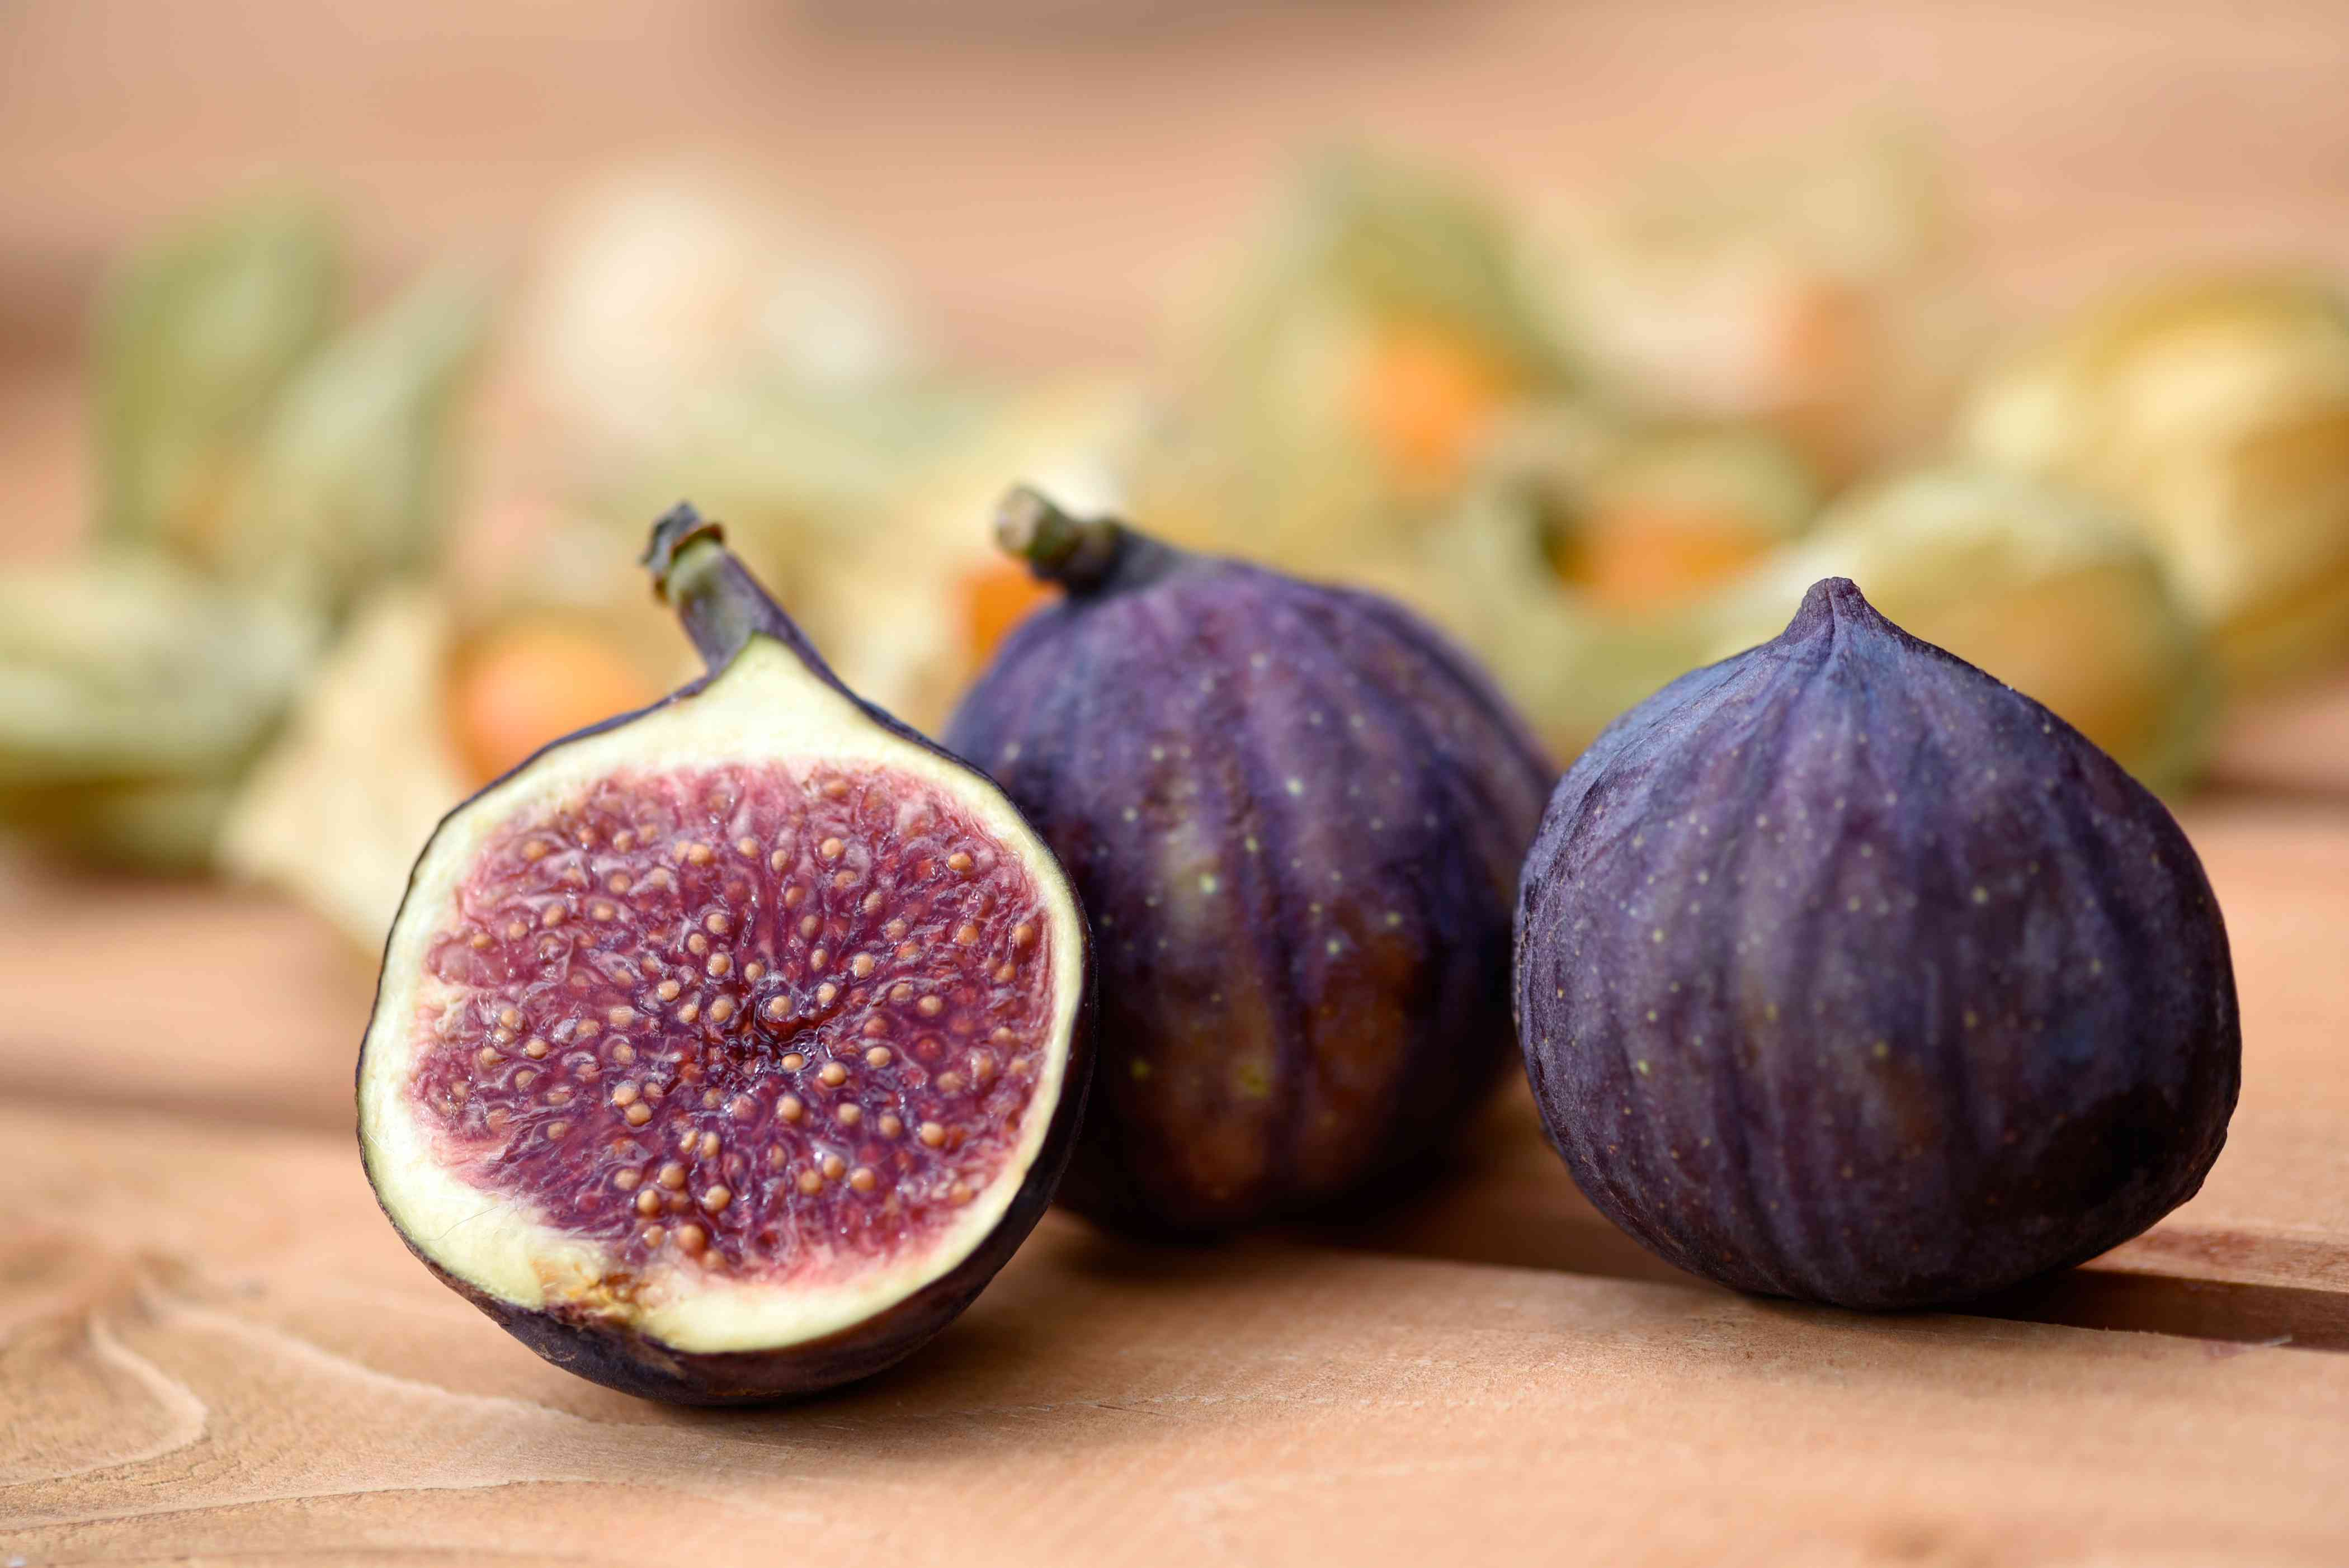 Common fig fruit on wooden surface with one sliced in half